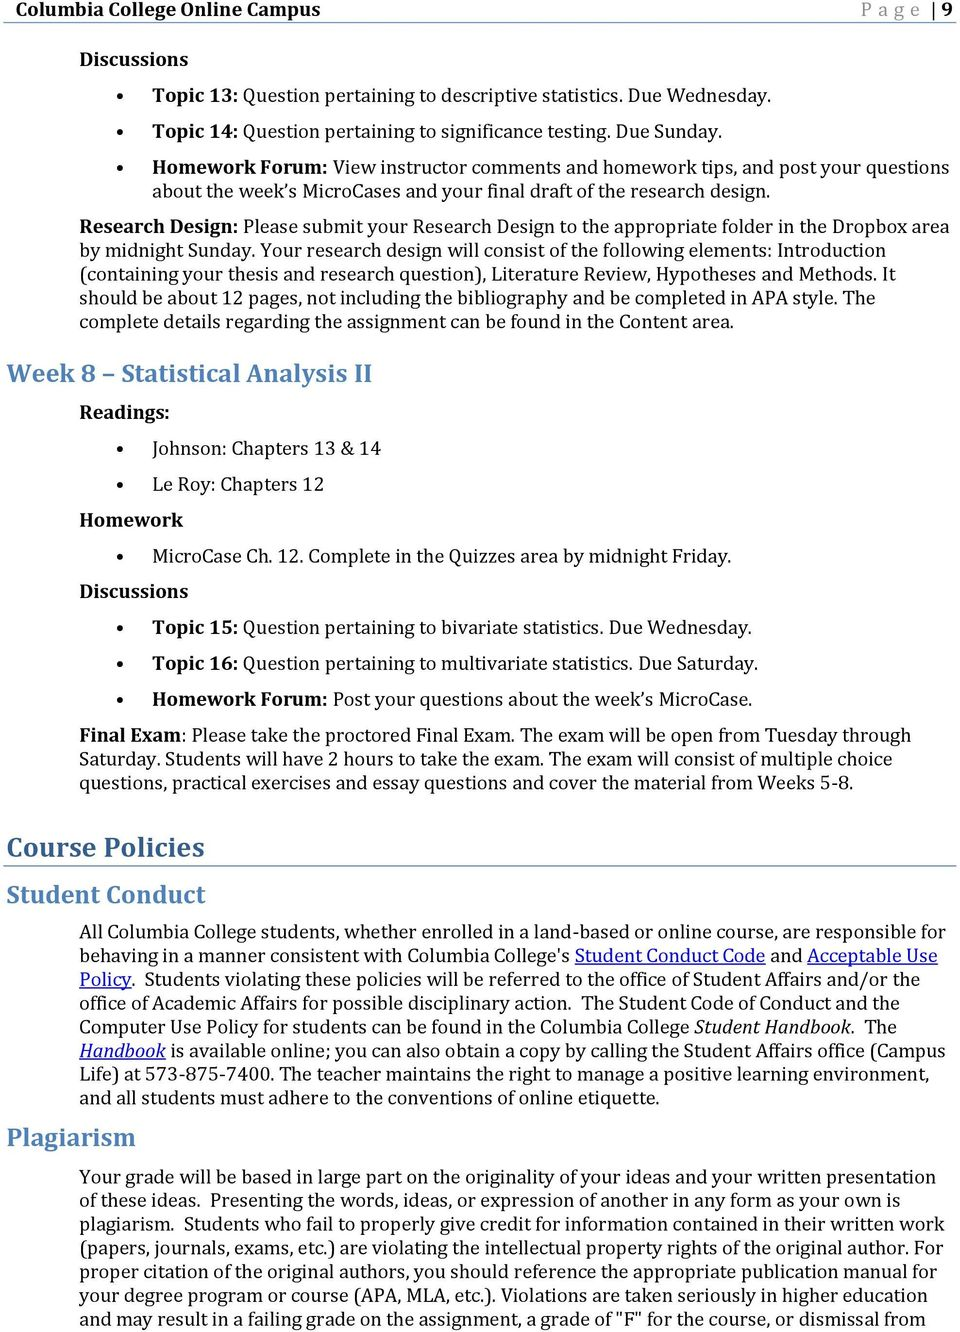 Research Design: Please submit your Research Design to the appropriate folder in the Dropbox area by midnight Sunday.